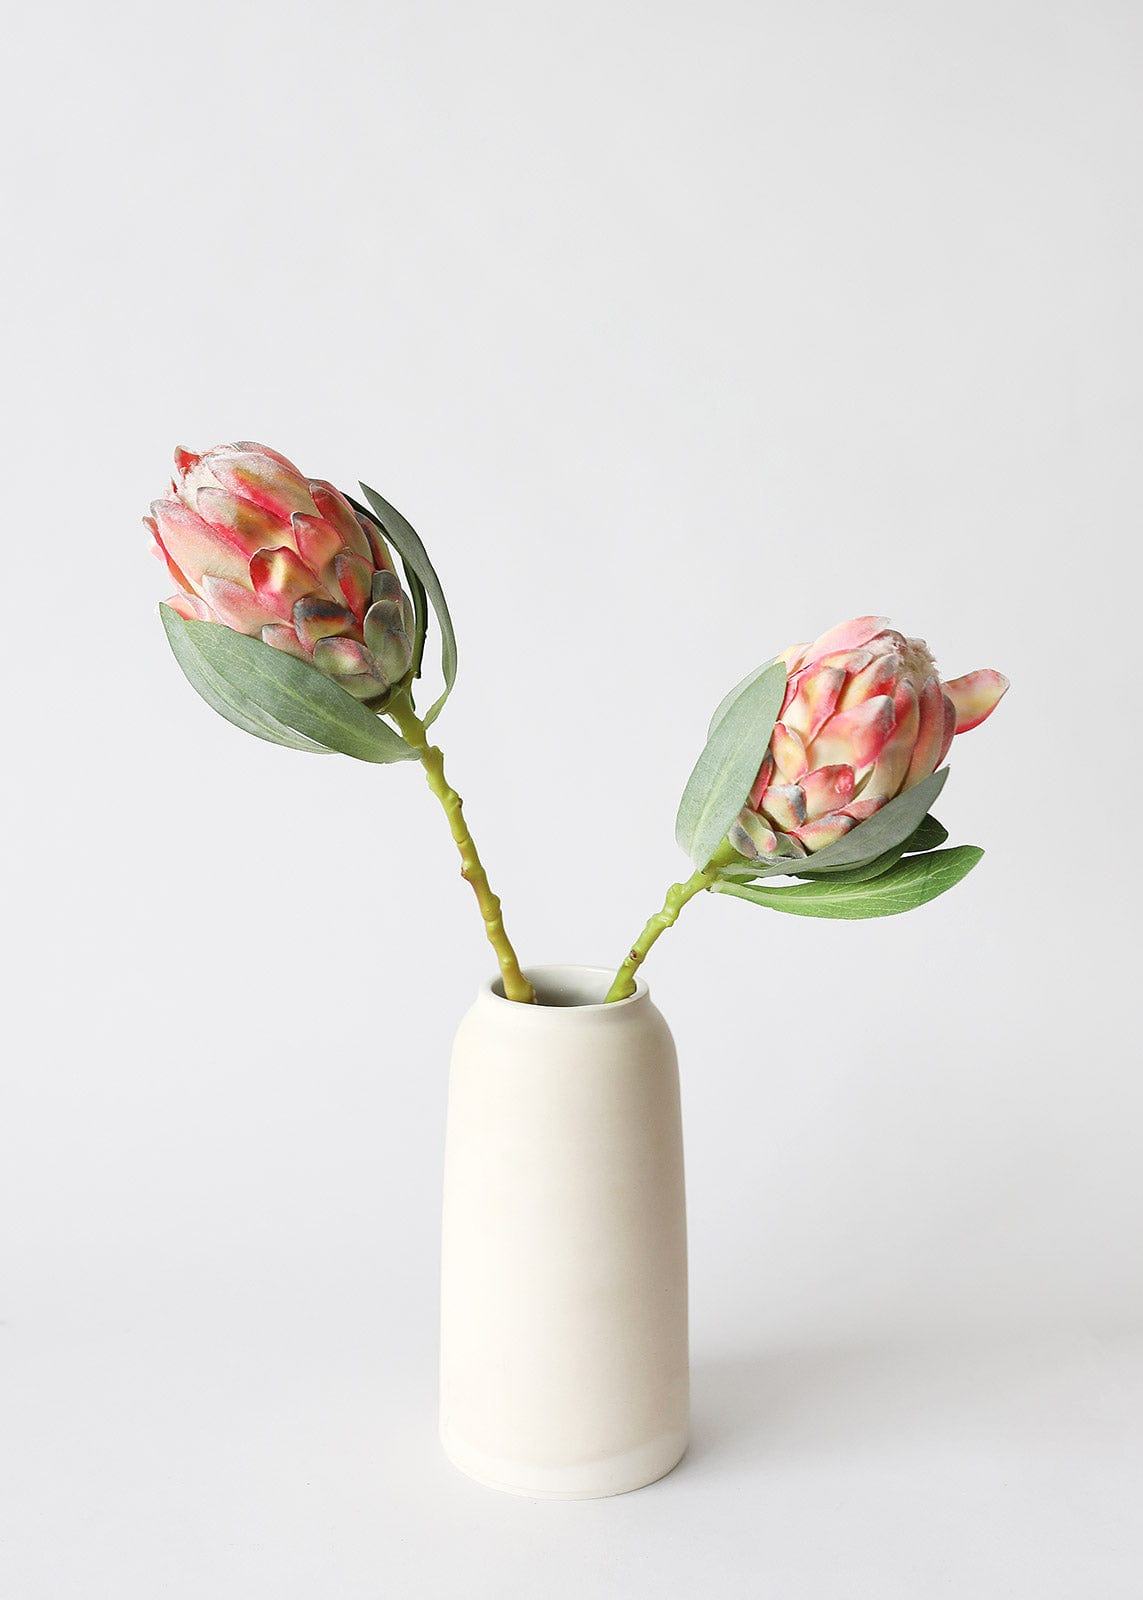 Artificial Coral Protea Flowers in Vase